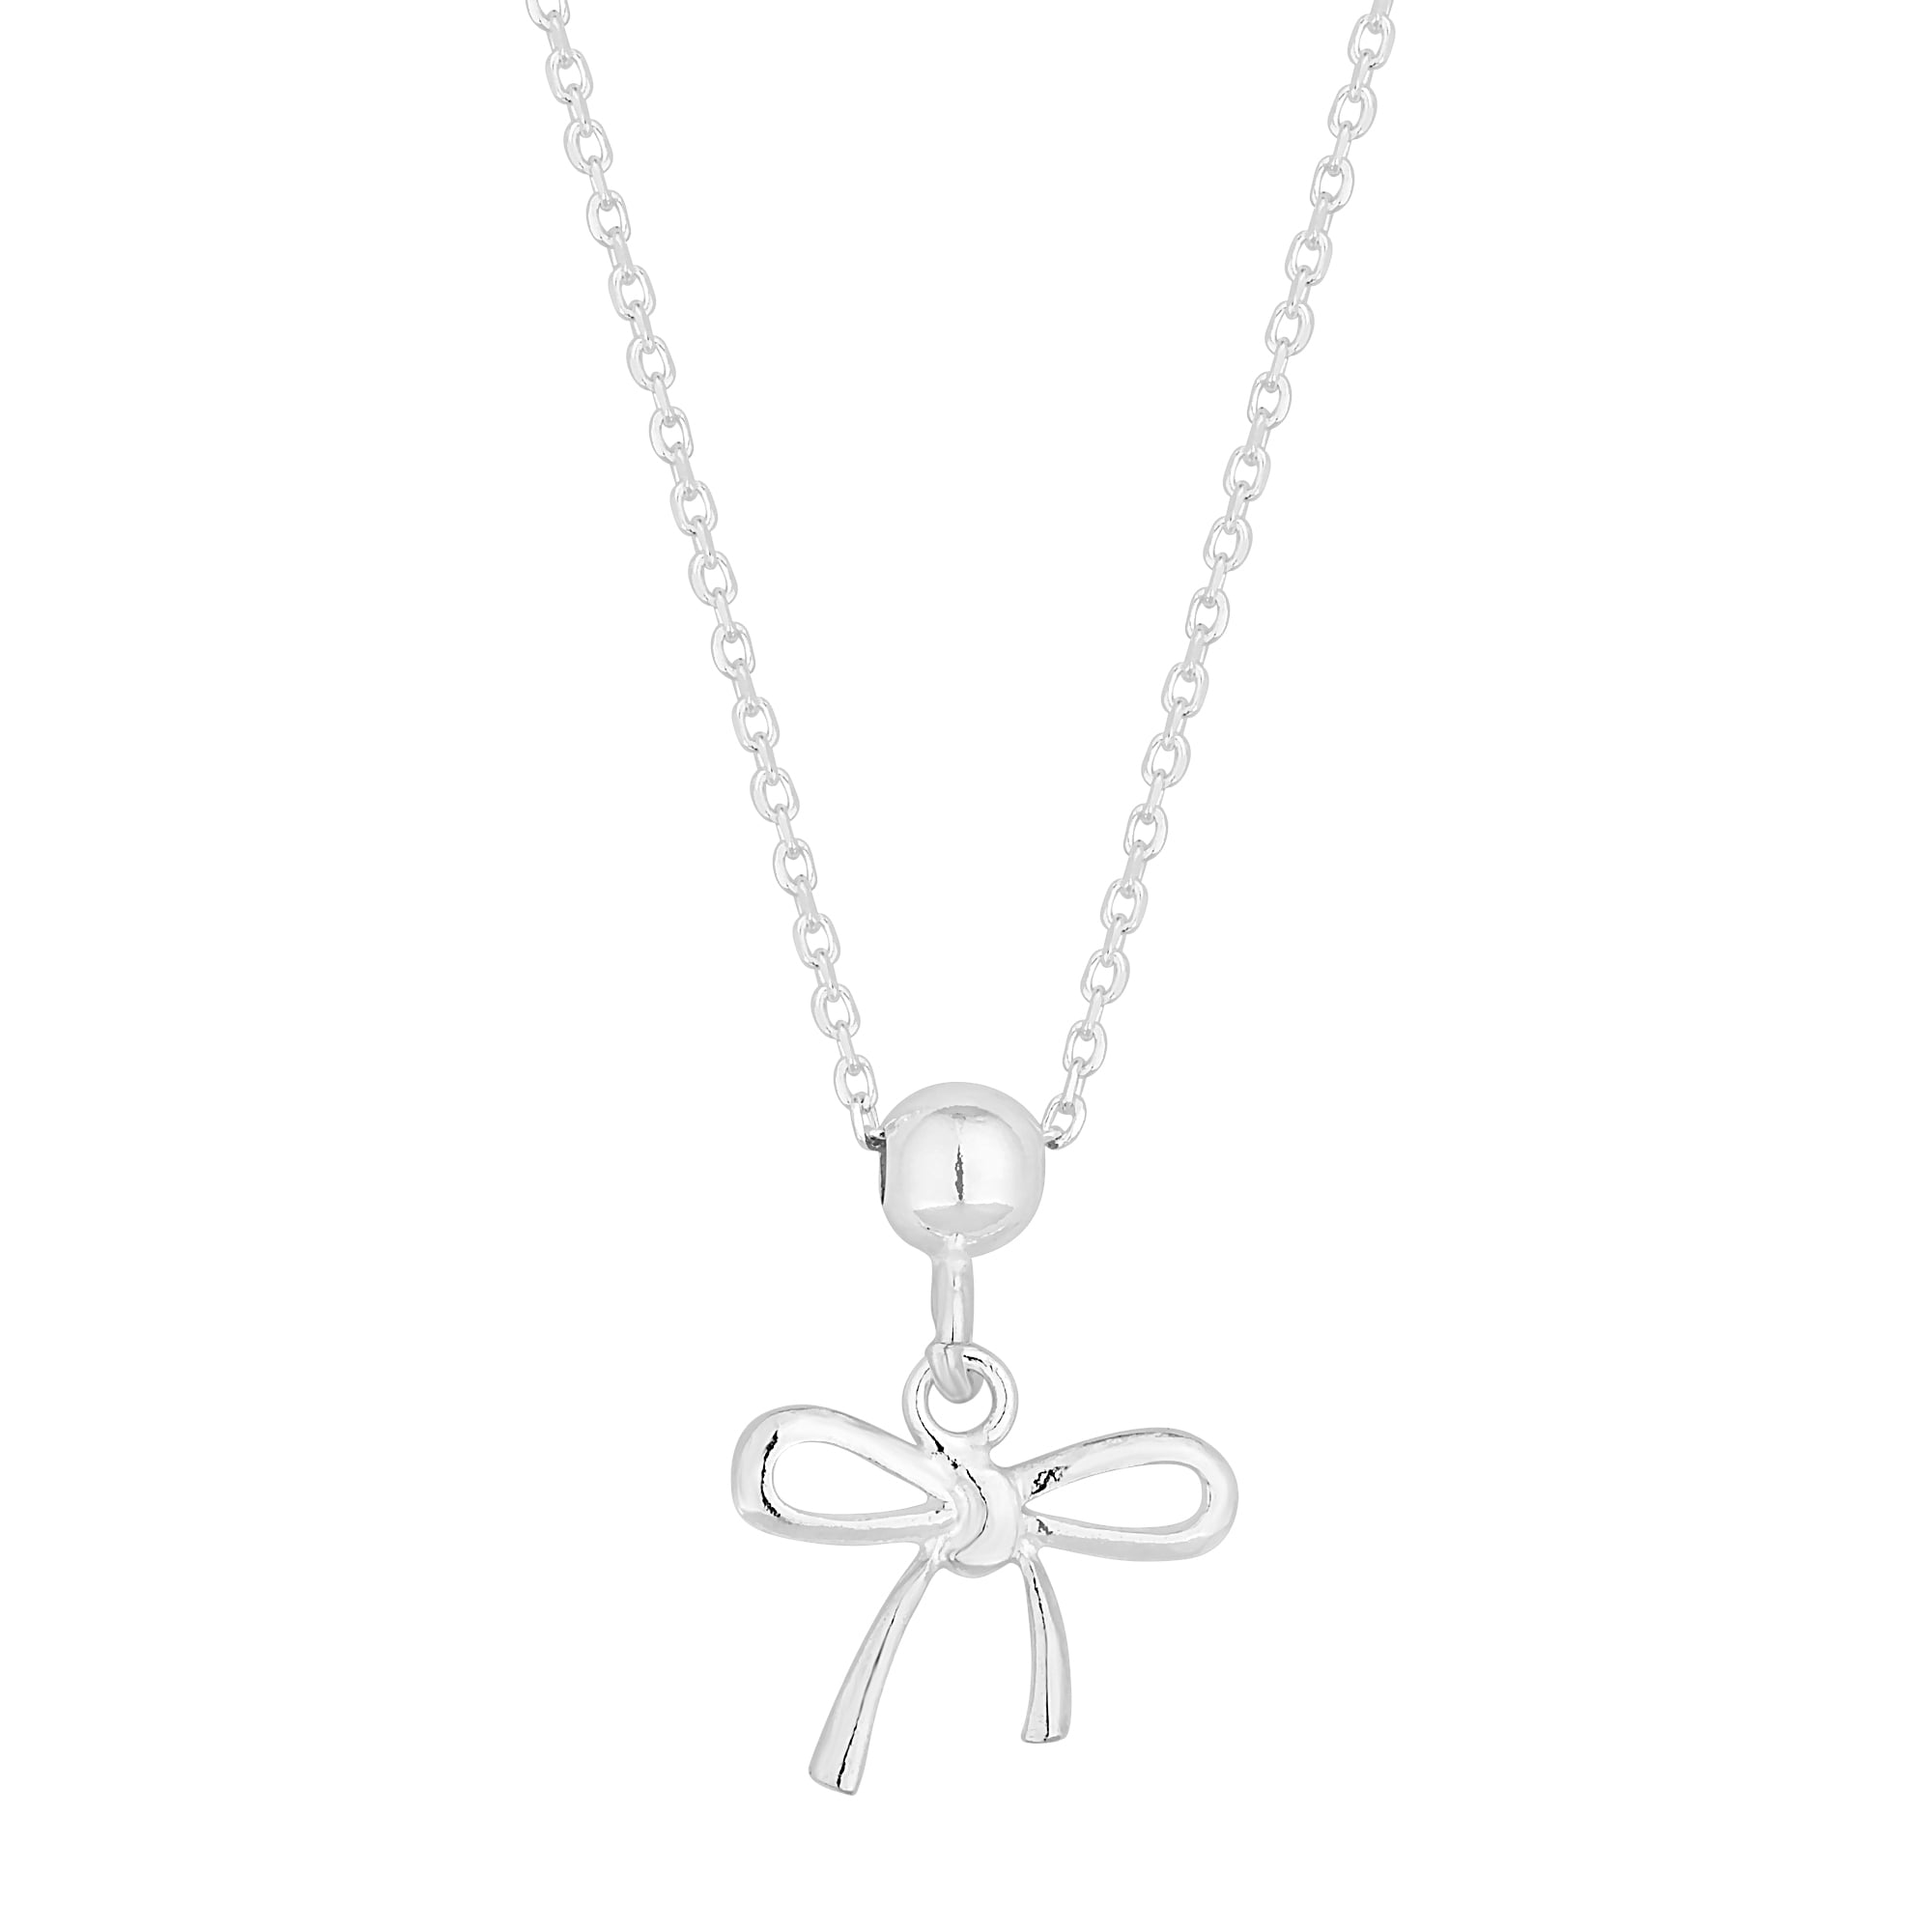 necklace motif pear drops and featuring strand collections double graff shape a bow diamond